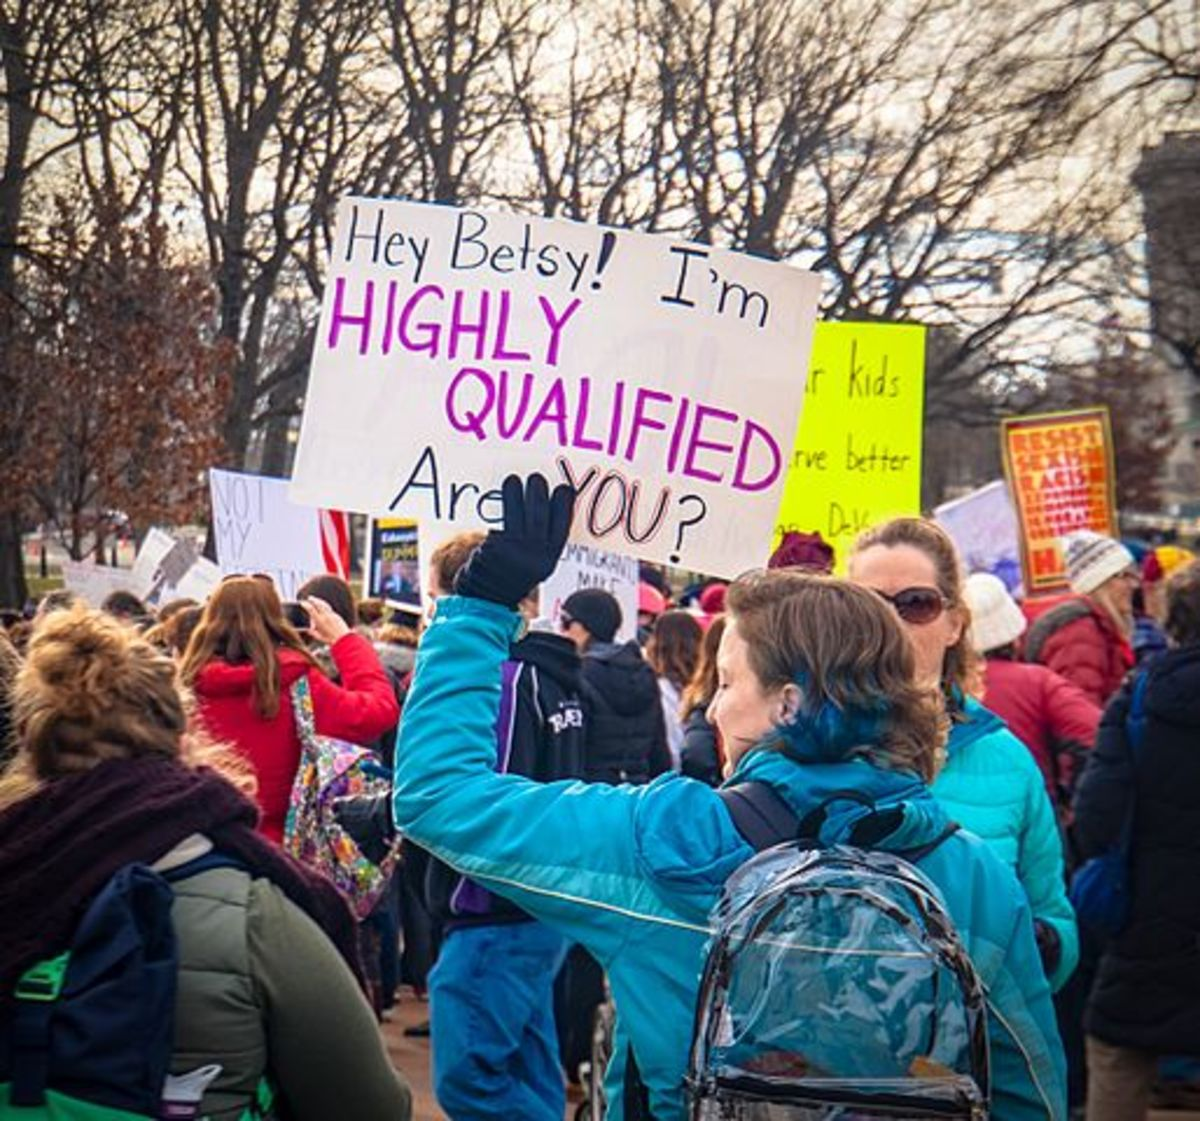 Protests over Betsy DeVos as Trump's pick for Secretary of Education